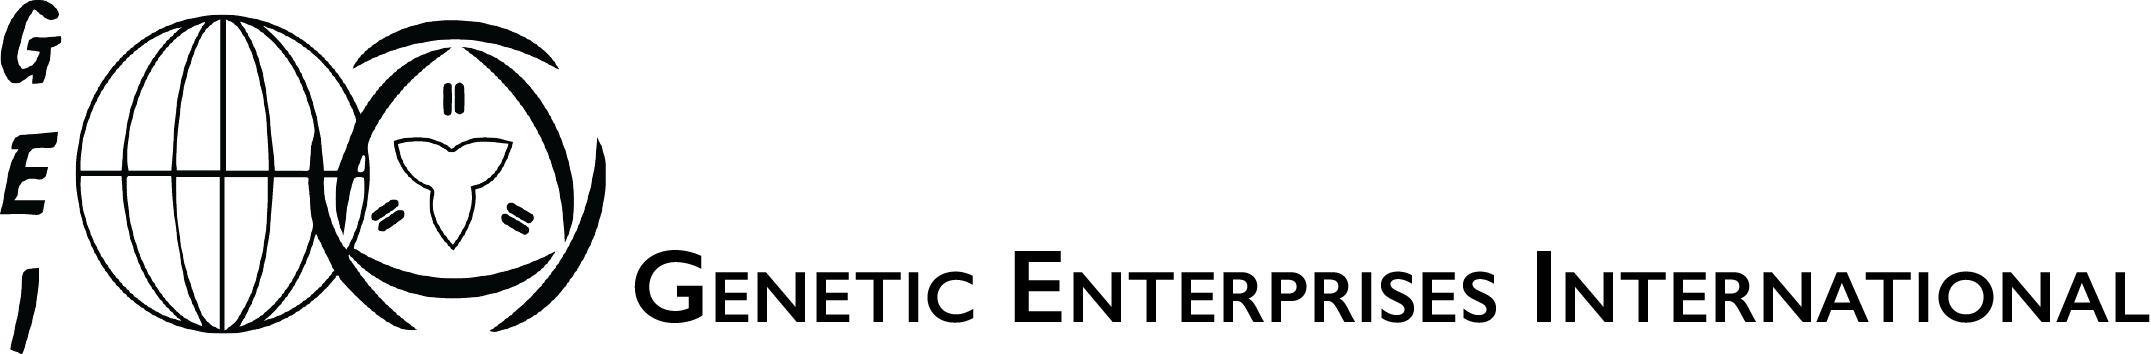 Genetic Enterprises International